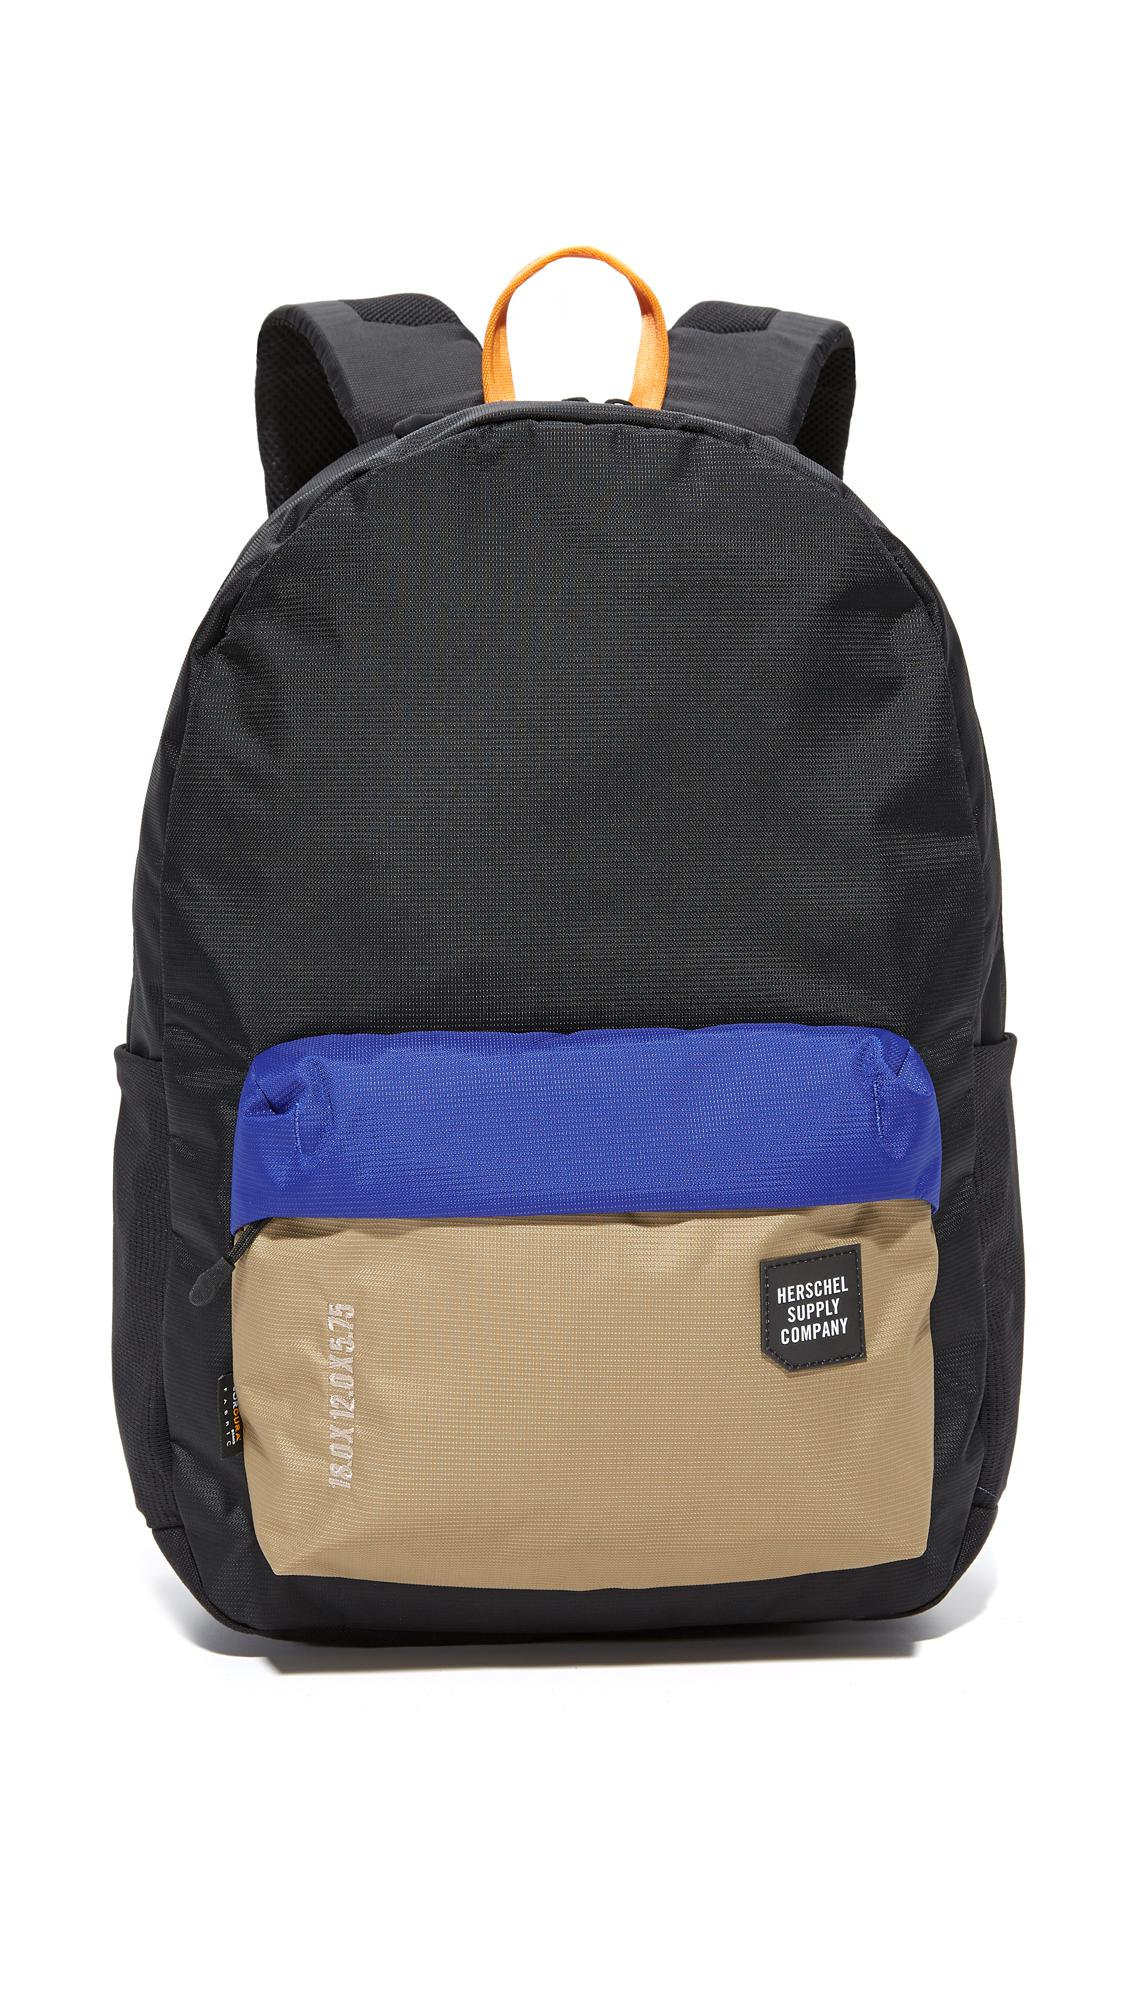 5cd065e60ab Lyst - Herschel Supply Co. Trail Rundle Backpack in Black for Men